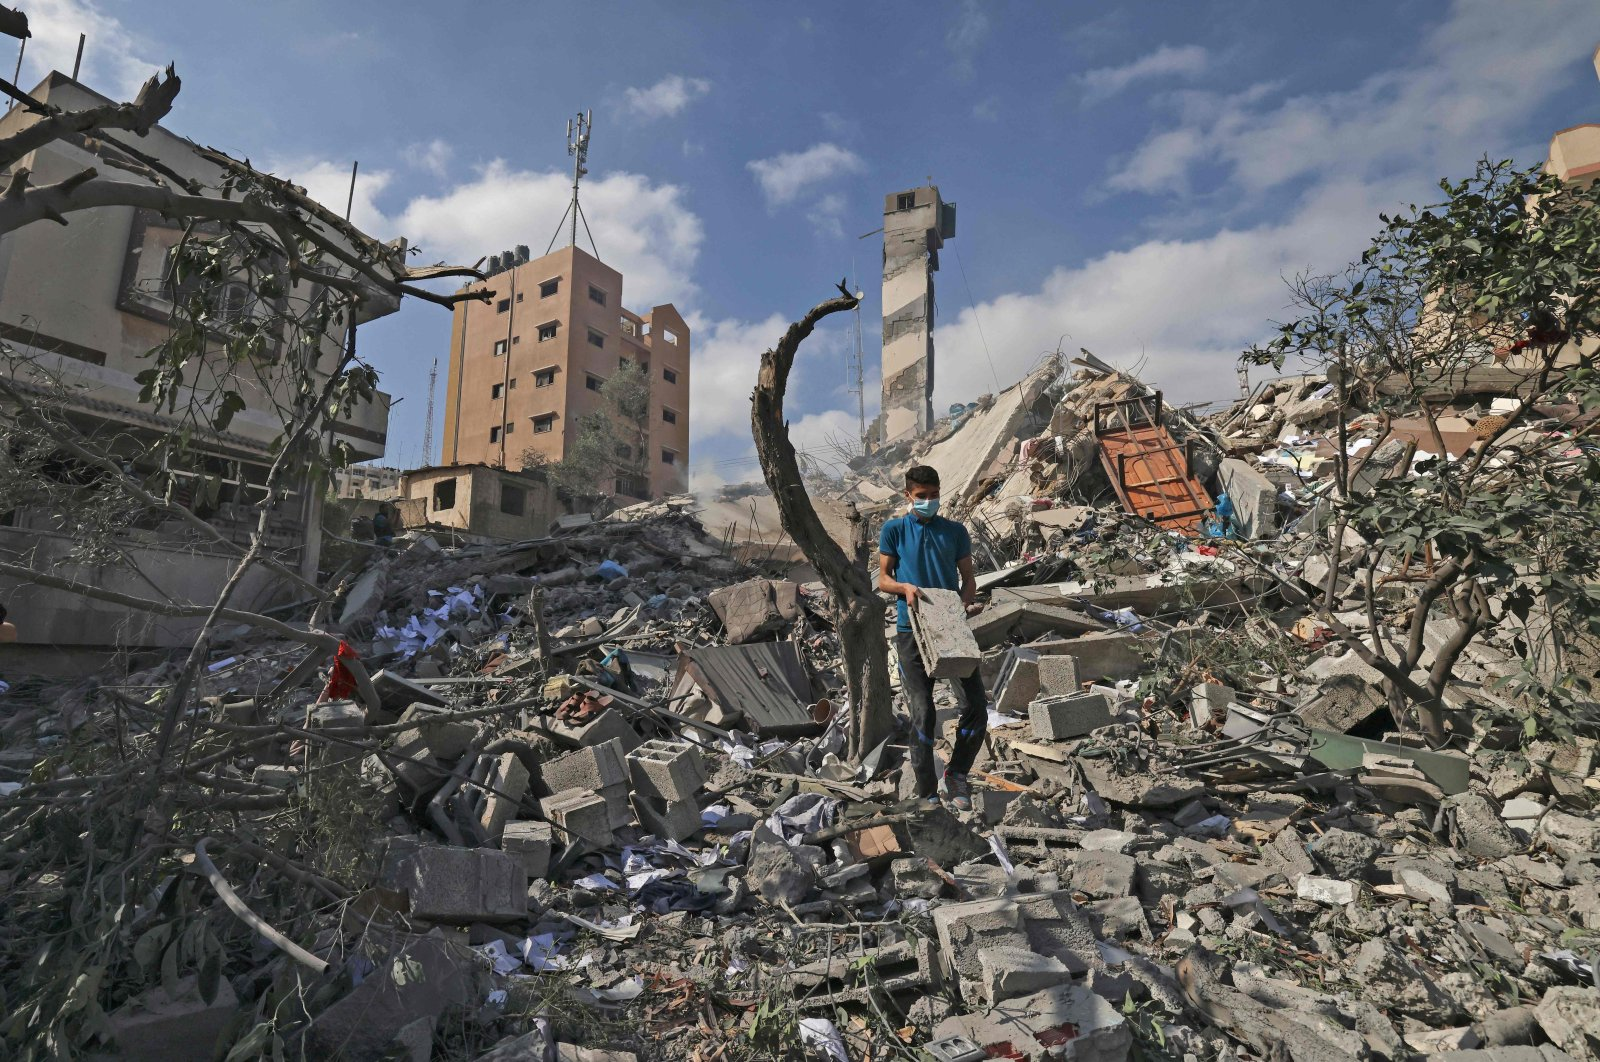 A Palestinian youth looks for salvageable items amid the rubbe of the Kuhail building which was destroyed in an early morning Israeli airstrike on Gaza City on May 18, 2021. (AFP Photo)